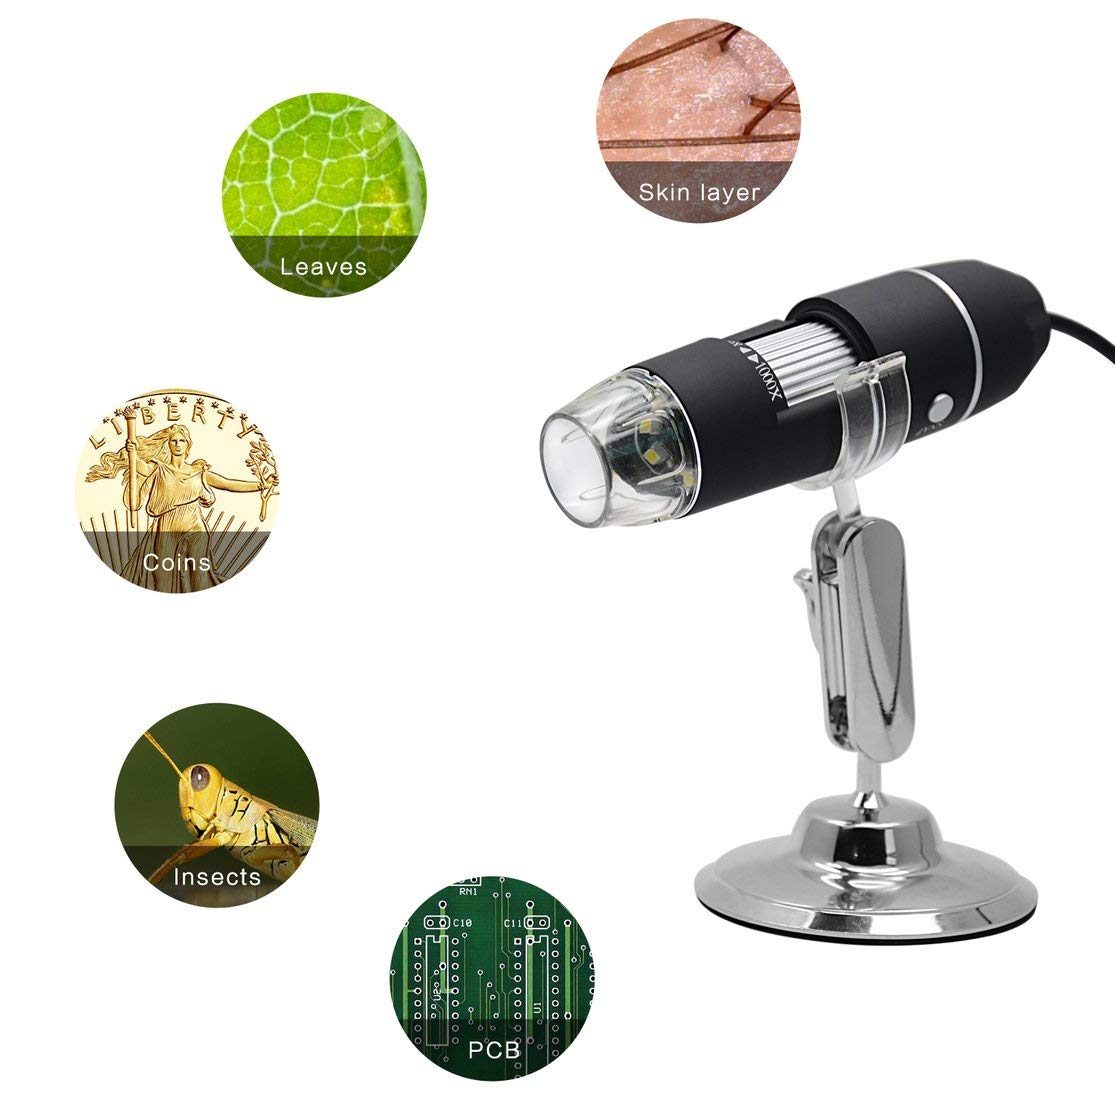 500X//1000X 300,000 pixels 8 LED Electronic Microscope Digital Microscope Usb Professional Mount With stand ypcx01